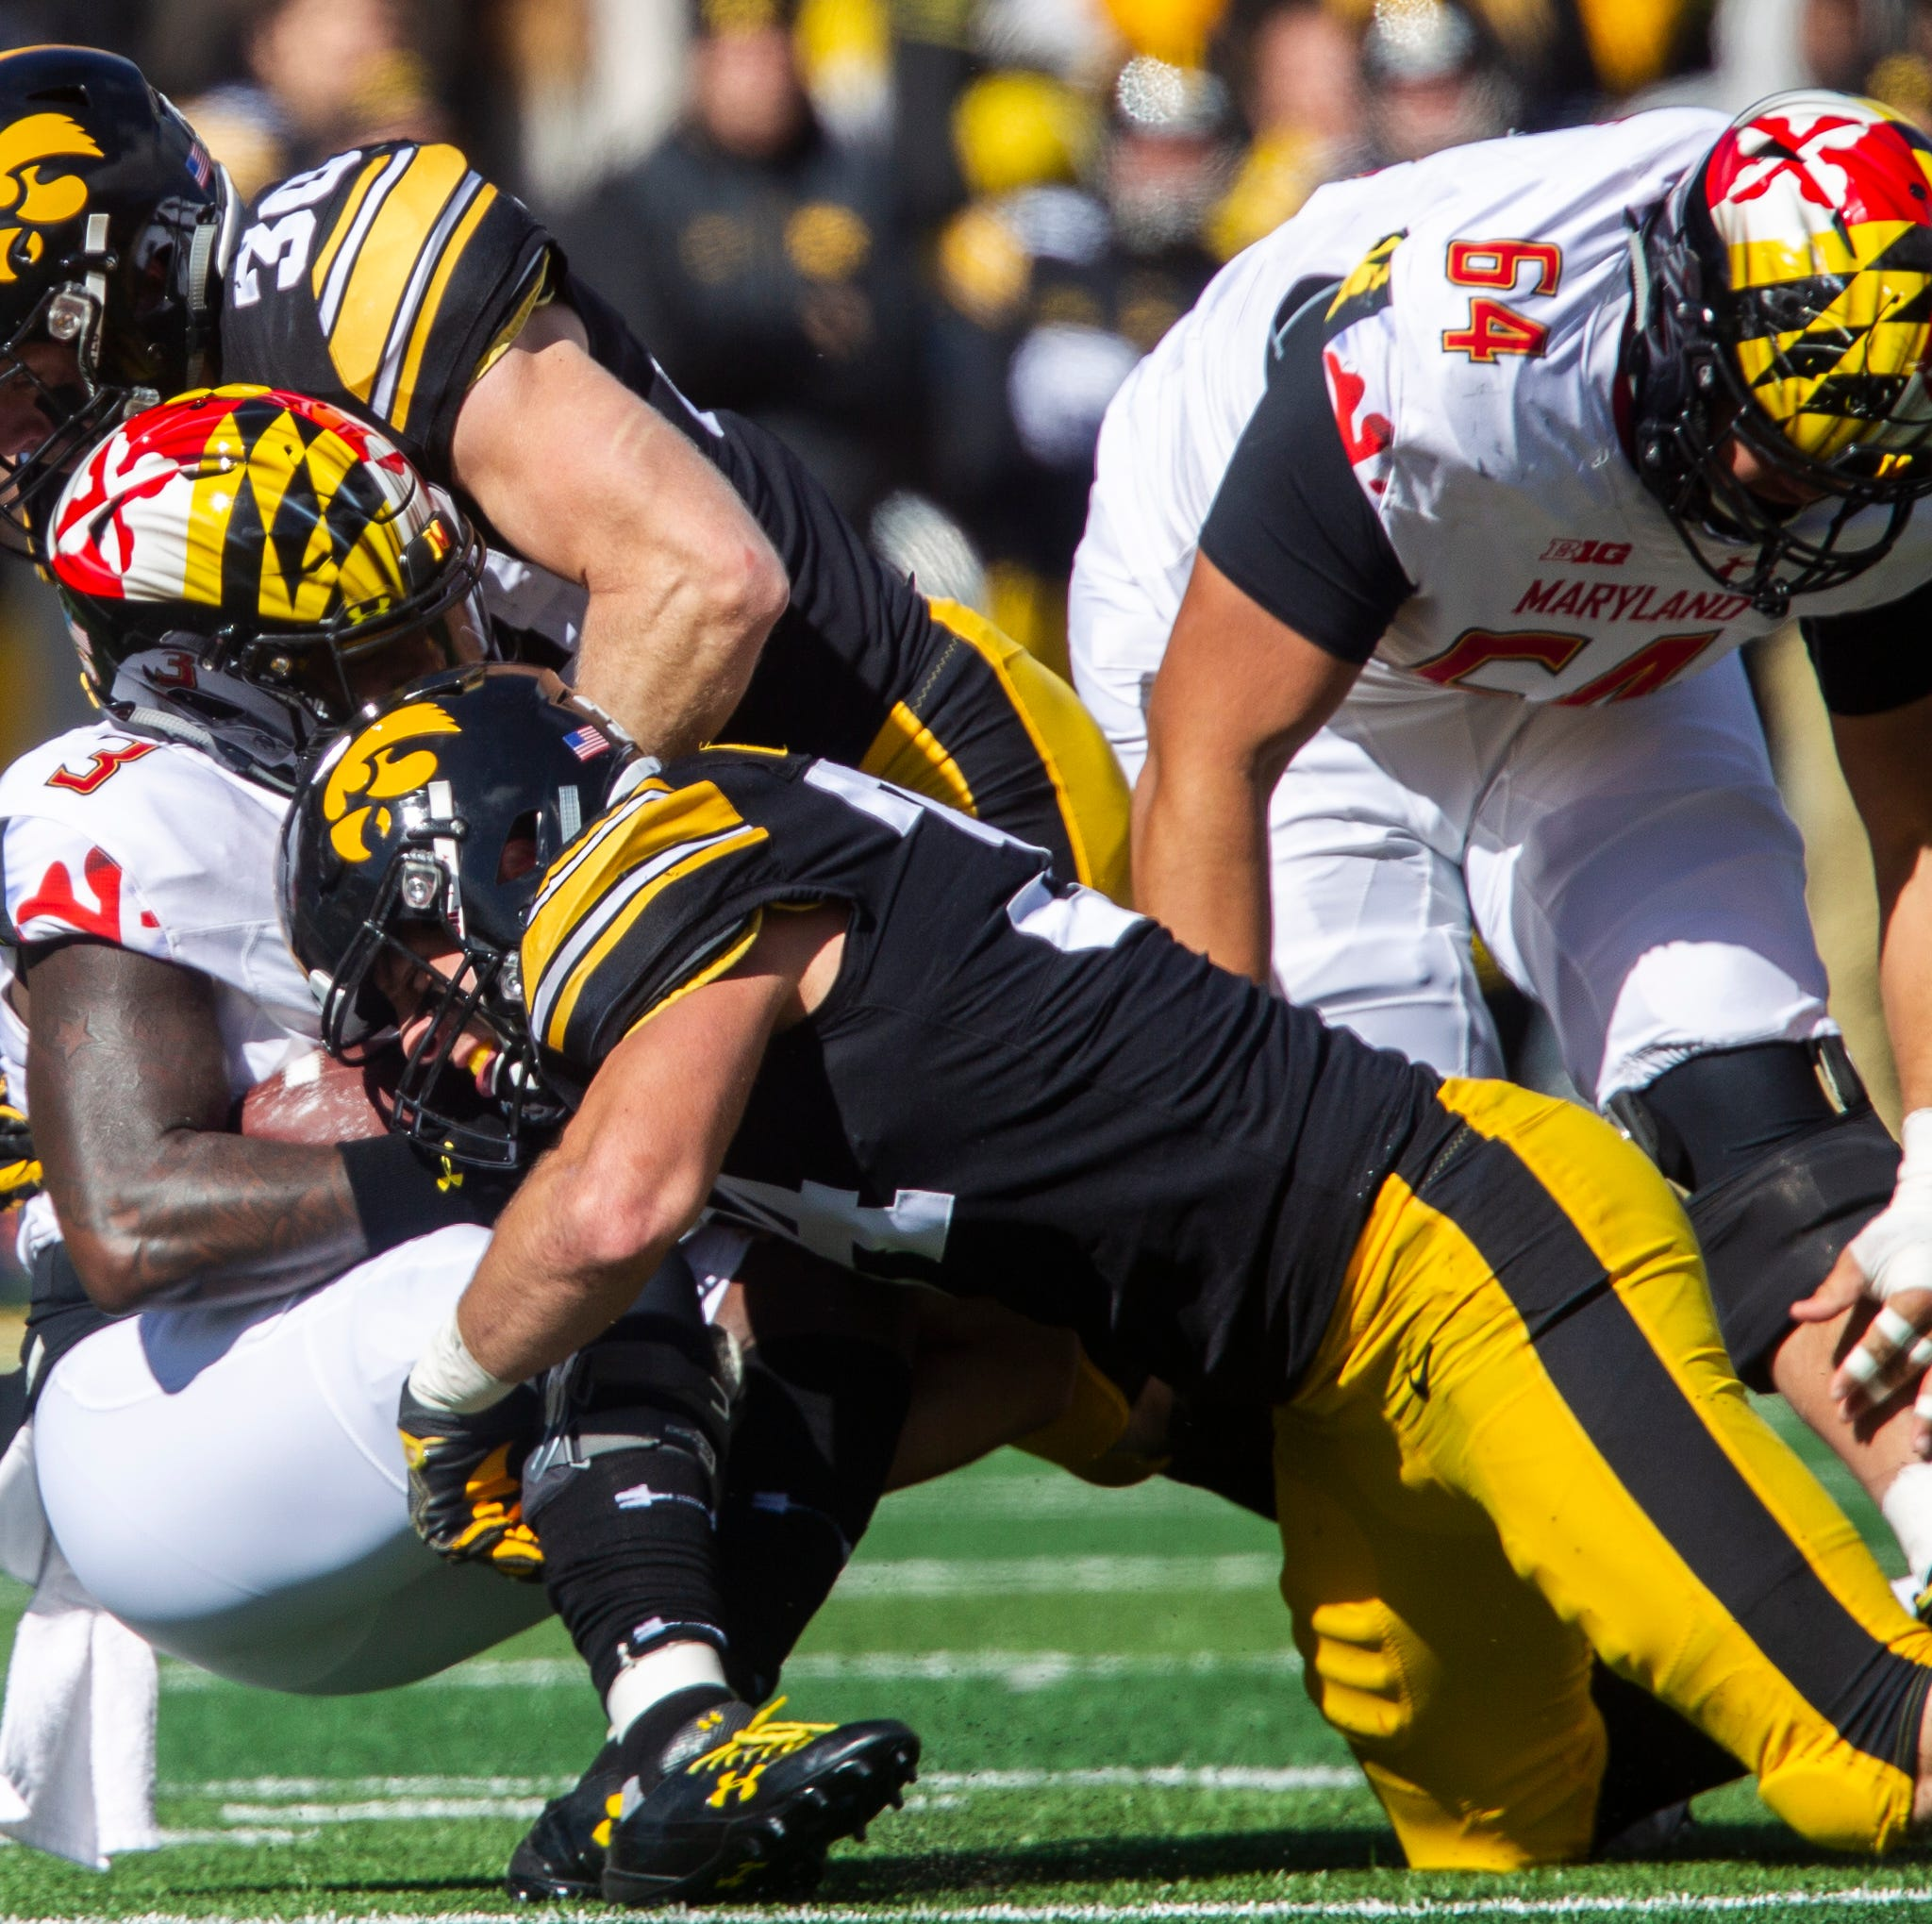 Iowa linebackers face challenging new path to playing time